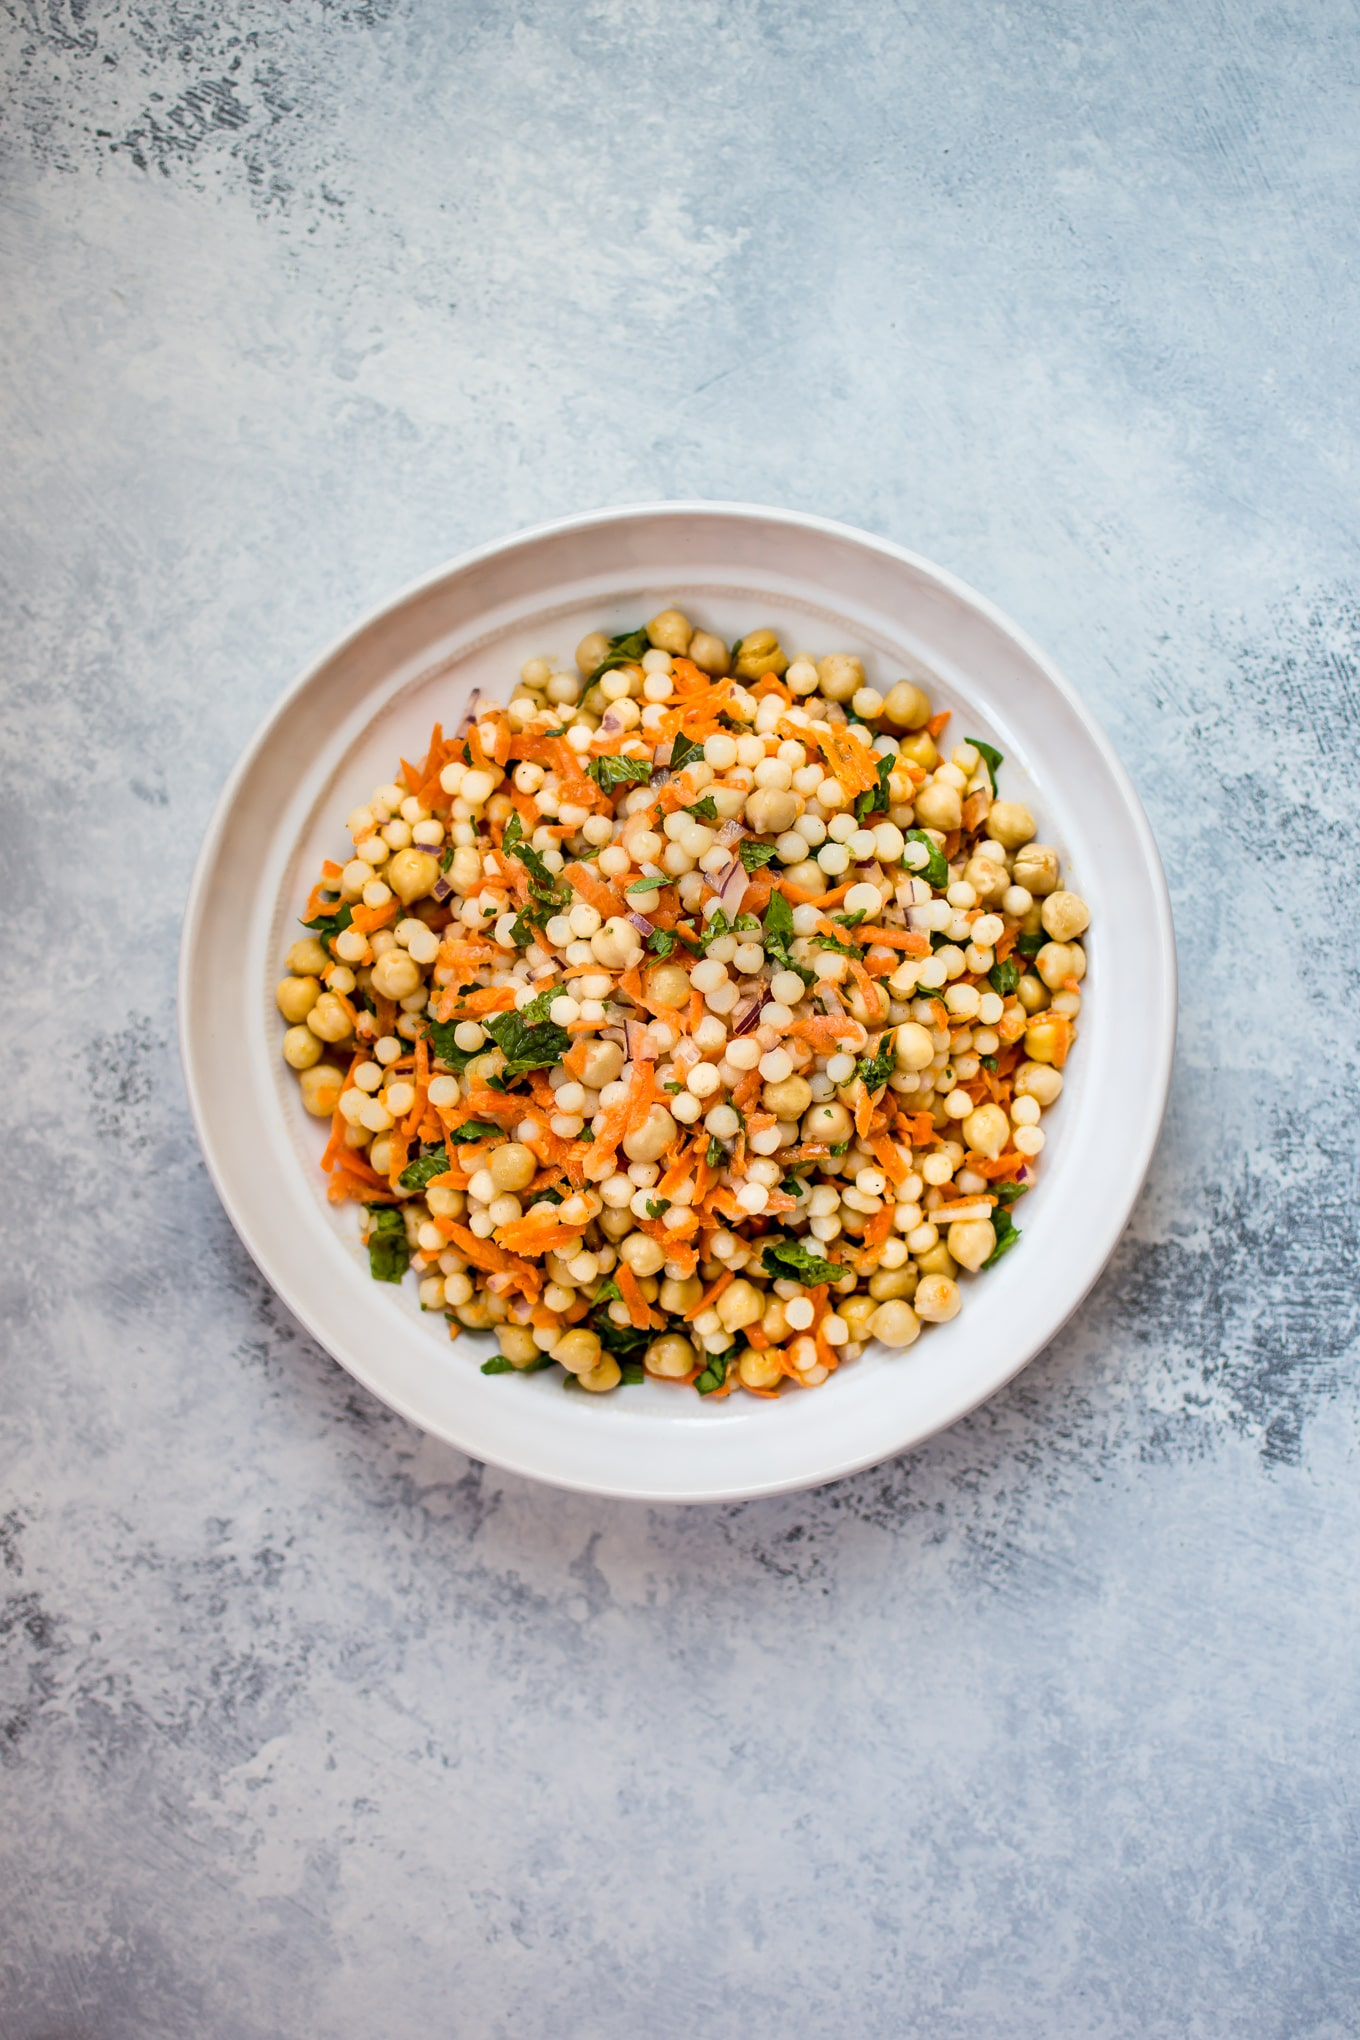 This vegan Israeli couscous salad recipe makes a wonderfully fresh light lunch or side salad. It's satisfying, healthy, and filling.